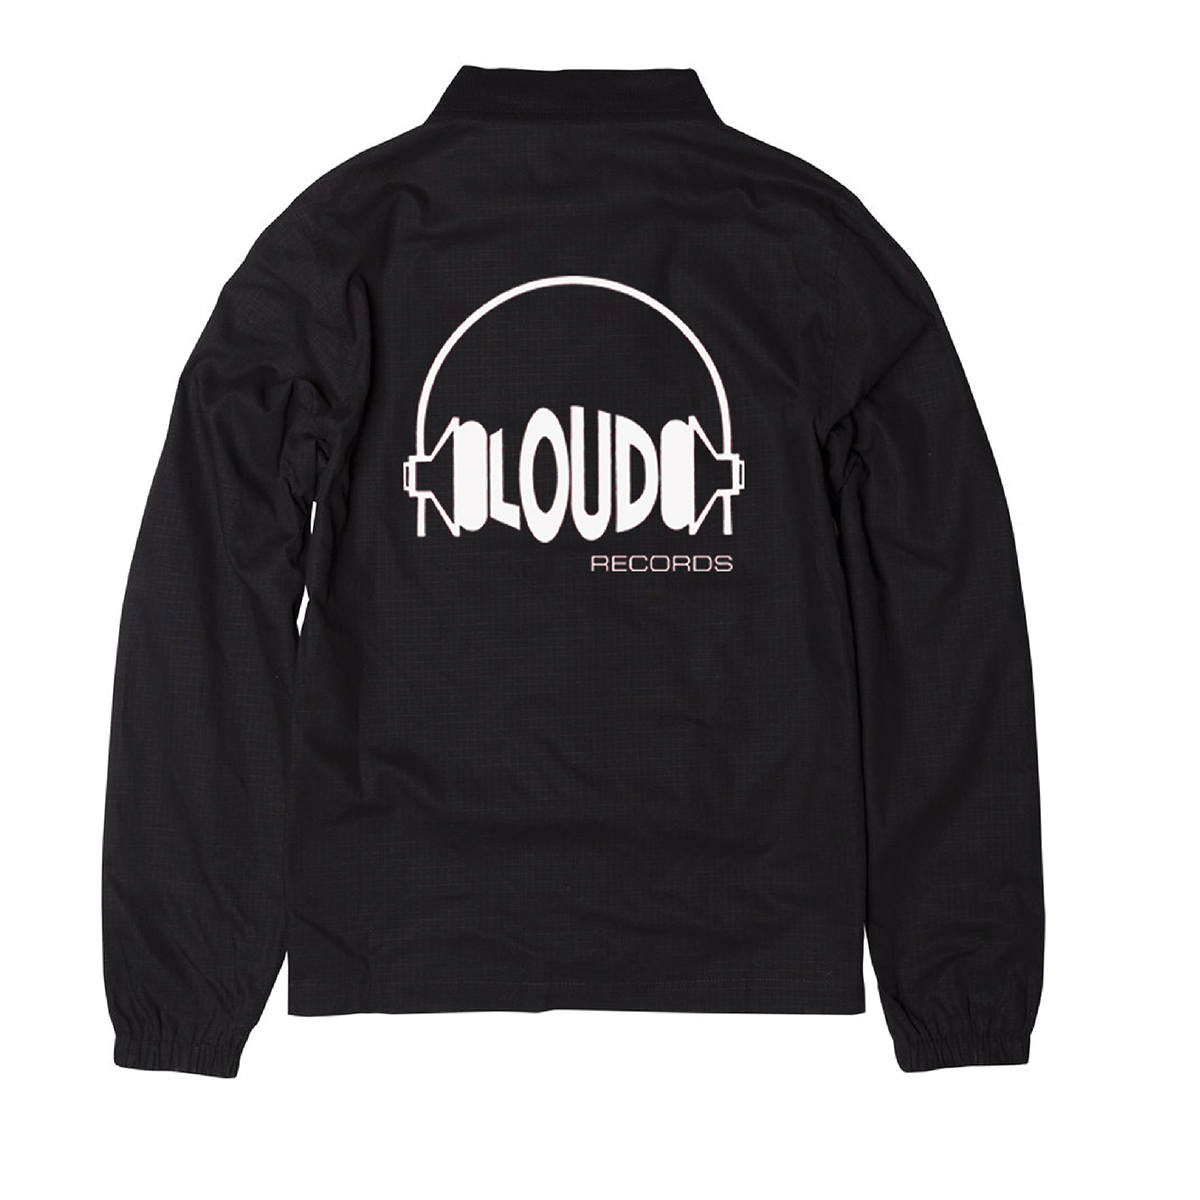 Loud Records Limited Edition Coaches Jacket